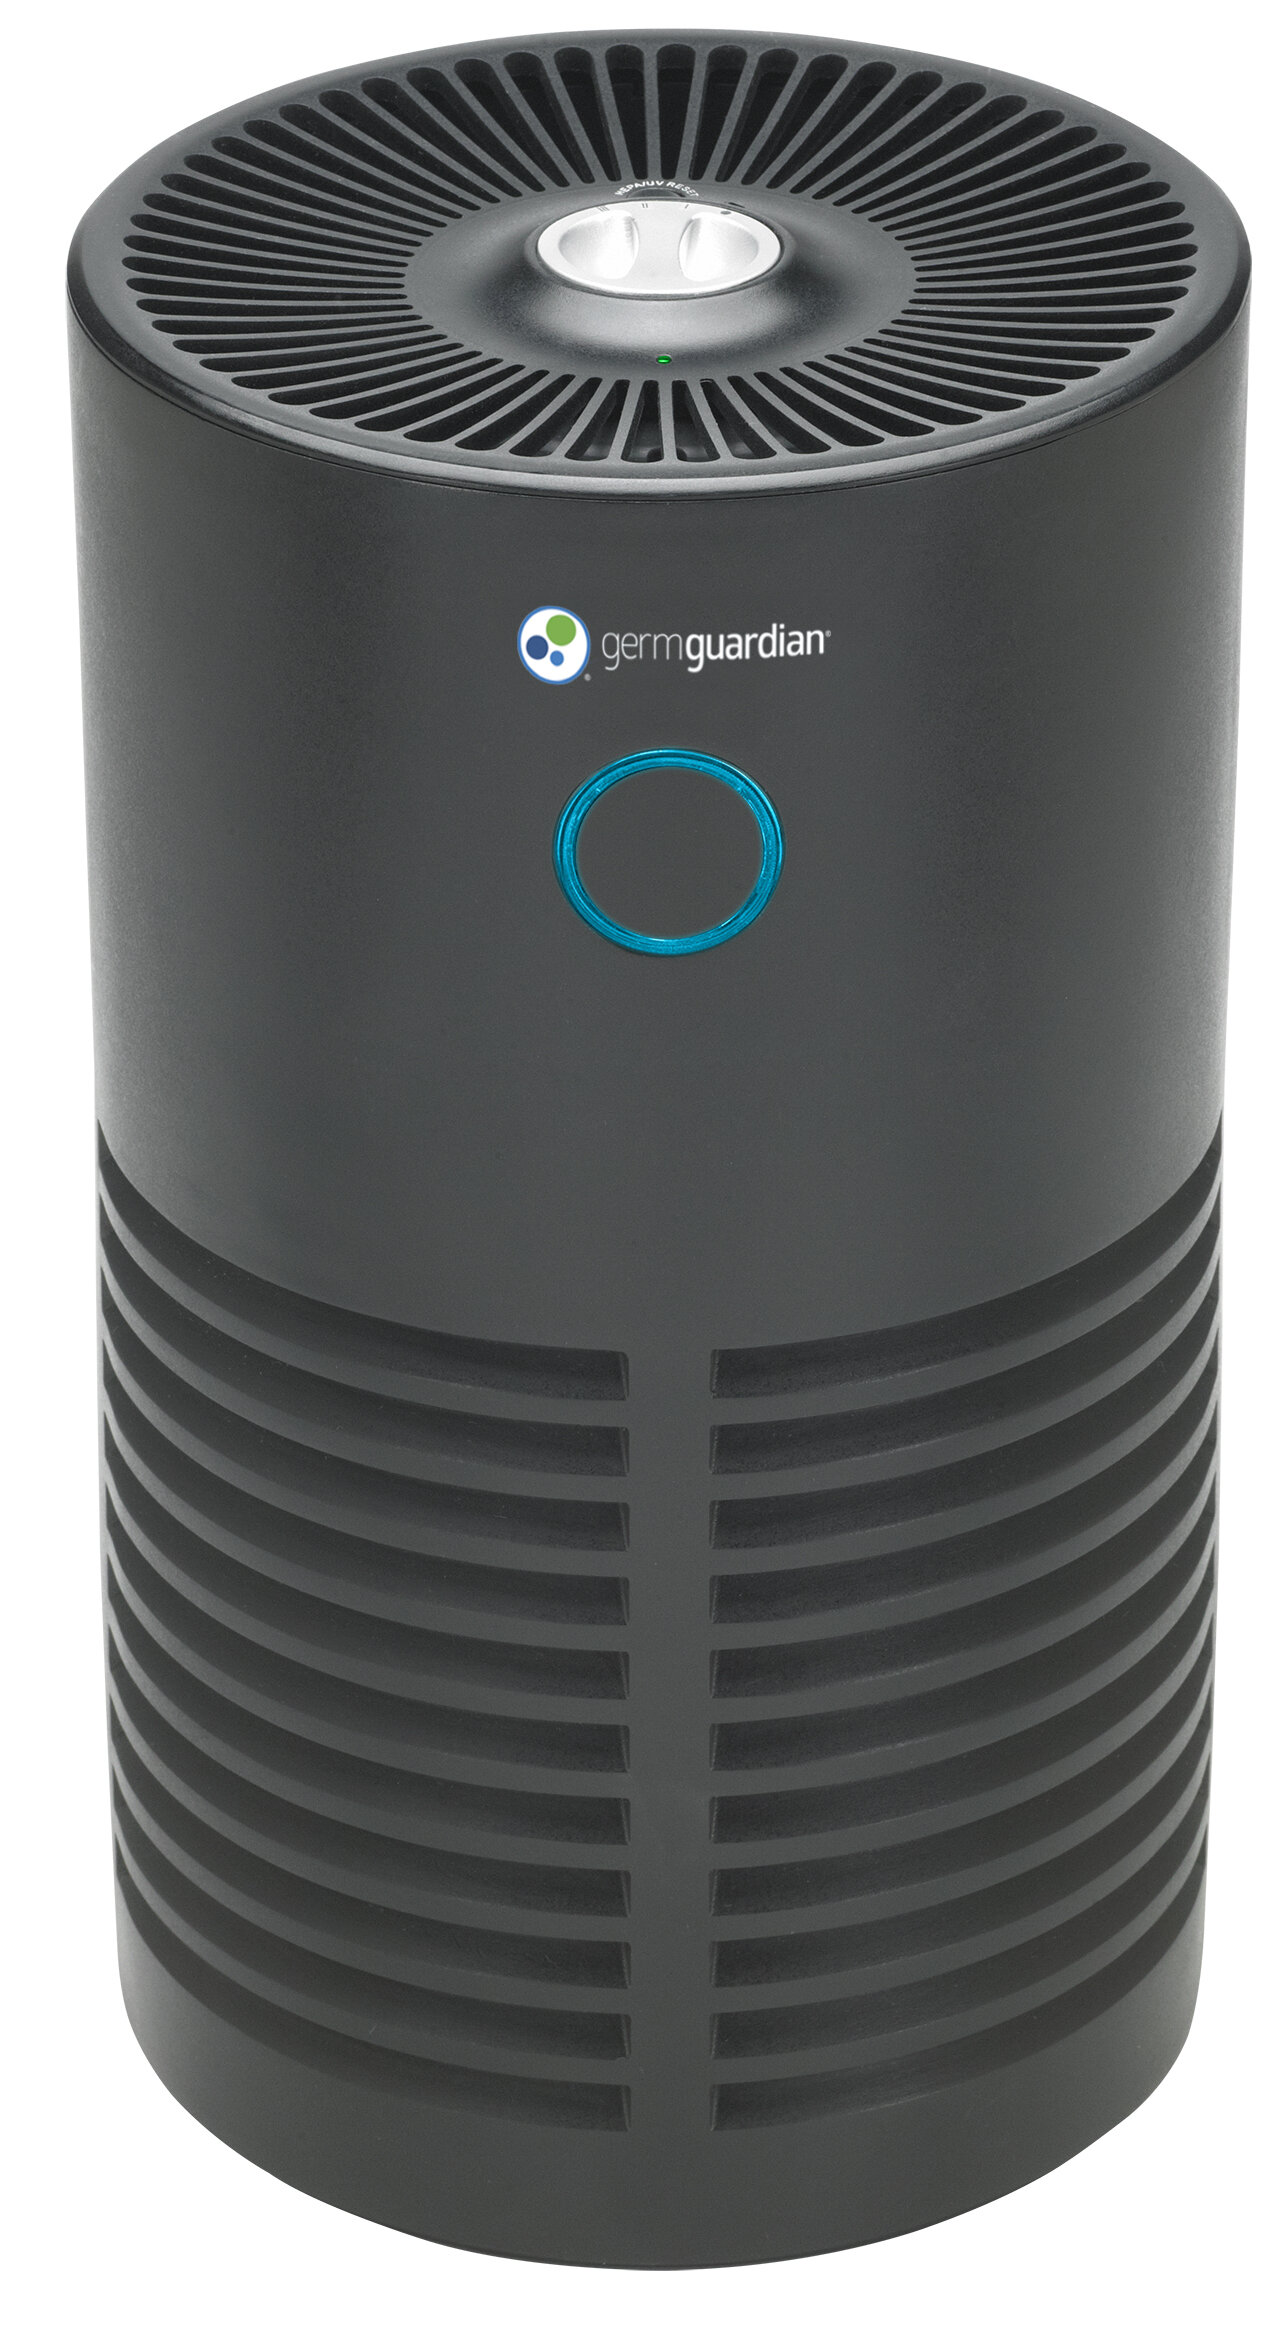 Germguardian 4 In 1 With True Hepa Filter Wayfair